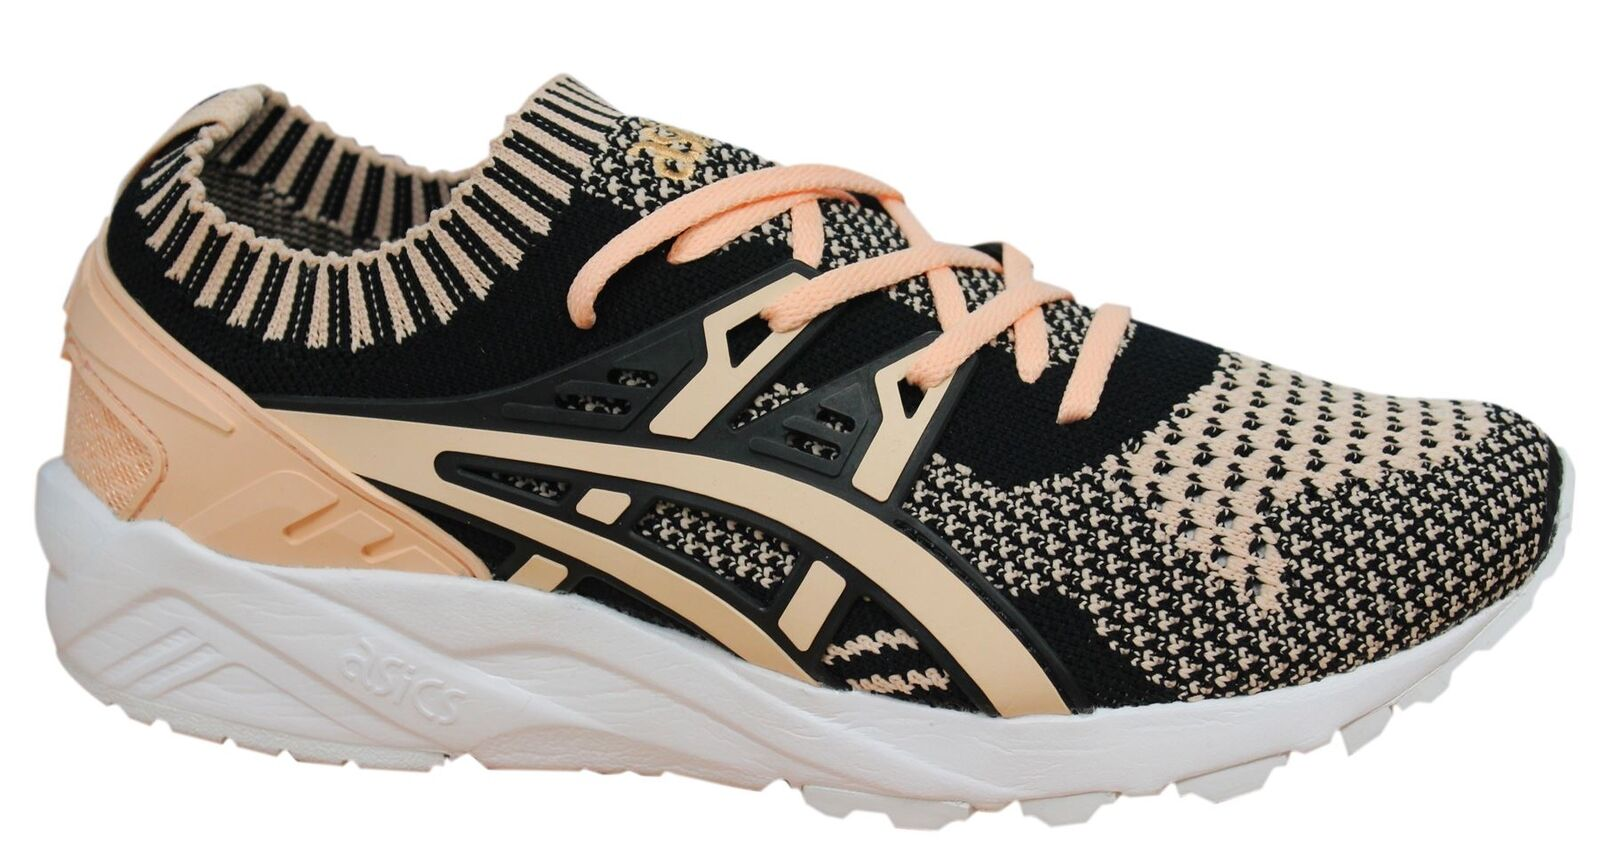 Asics Gel-Kayano Apricot Knit Lace H7W7N Up Womens Synthetic Trainers H7W7N Lace 1717 M14 e5492e